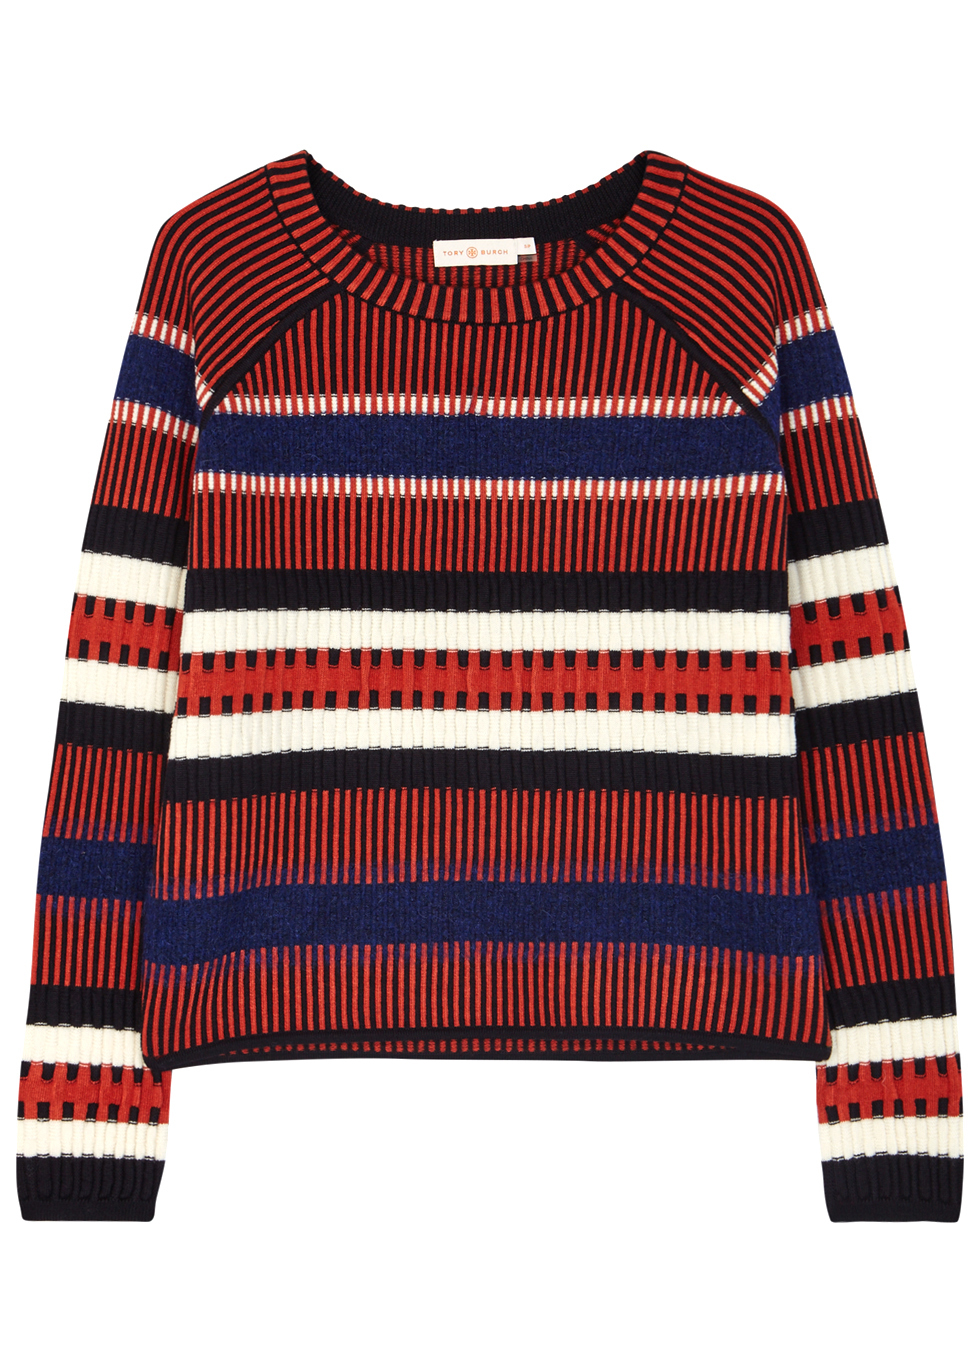 Monterey Striped Wool Blend Jumper - neckline: round neck; sleeve style: raglan; pattern: horizontal stripes; style: standard; predominant colour: navy; occasions: casual, creative work; length: standard; fibres: wool - mix; fit: standard fit; sleeve length: long sleeve; texture group: knits/crochet; pattern type: knitted - fine stitch; pattern size: big & busy (top); multicoloured: multicoloured; season: a/w 2016; wardrobe: highlight